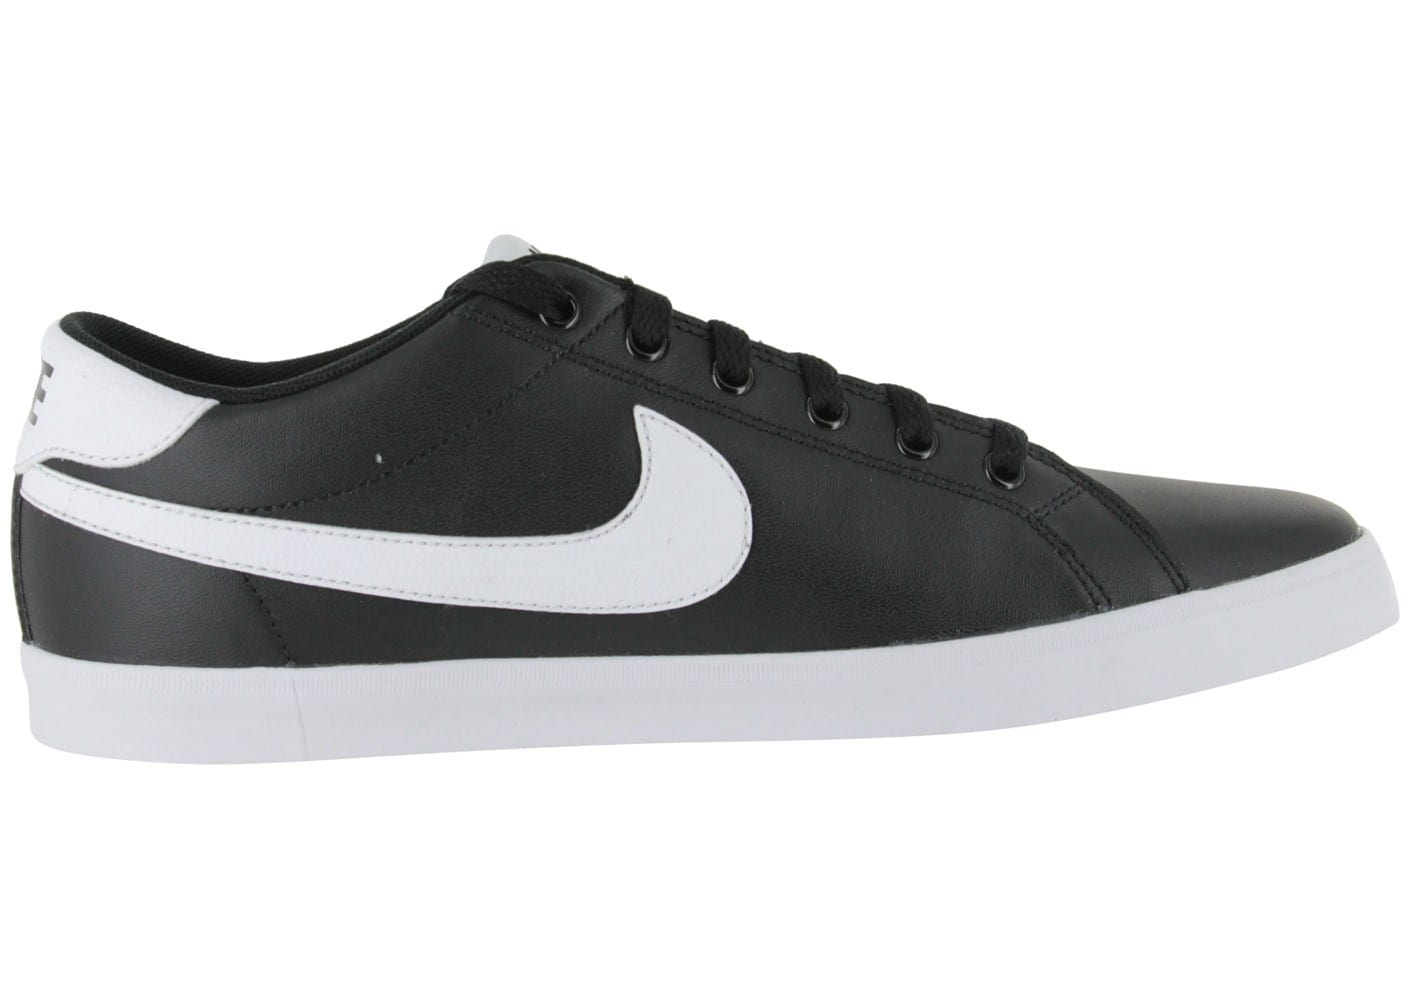 Nike Eastham Noir Chaussures Baskets homme Chausport